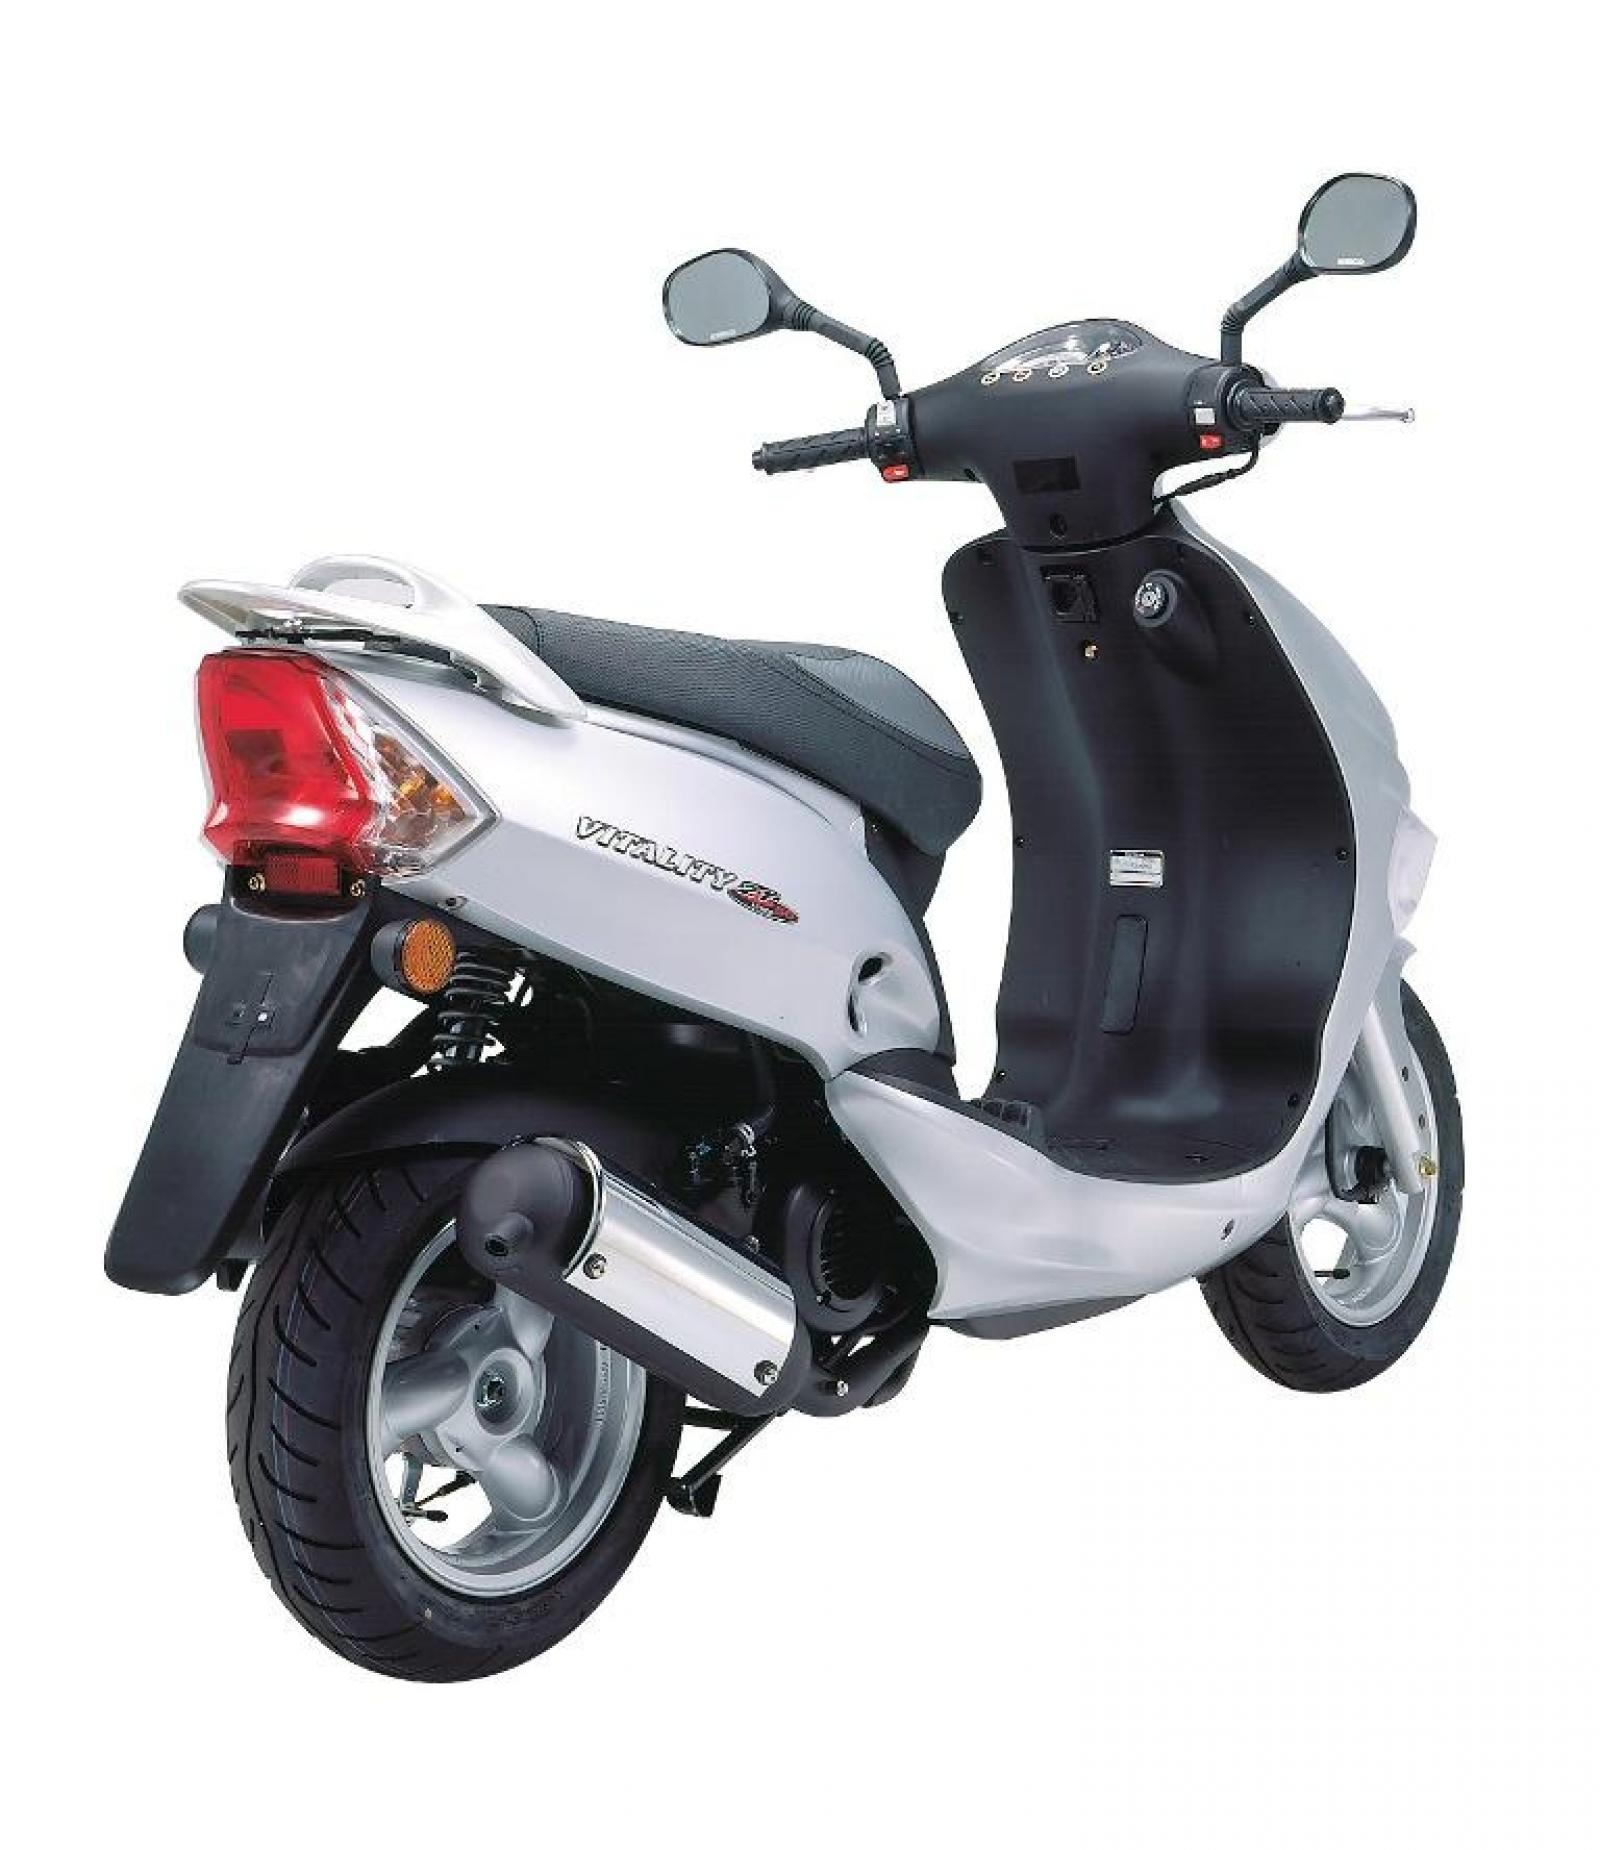 Kymco Grand Dink S 125 images #102201